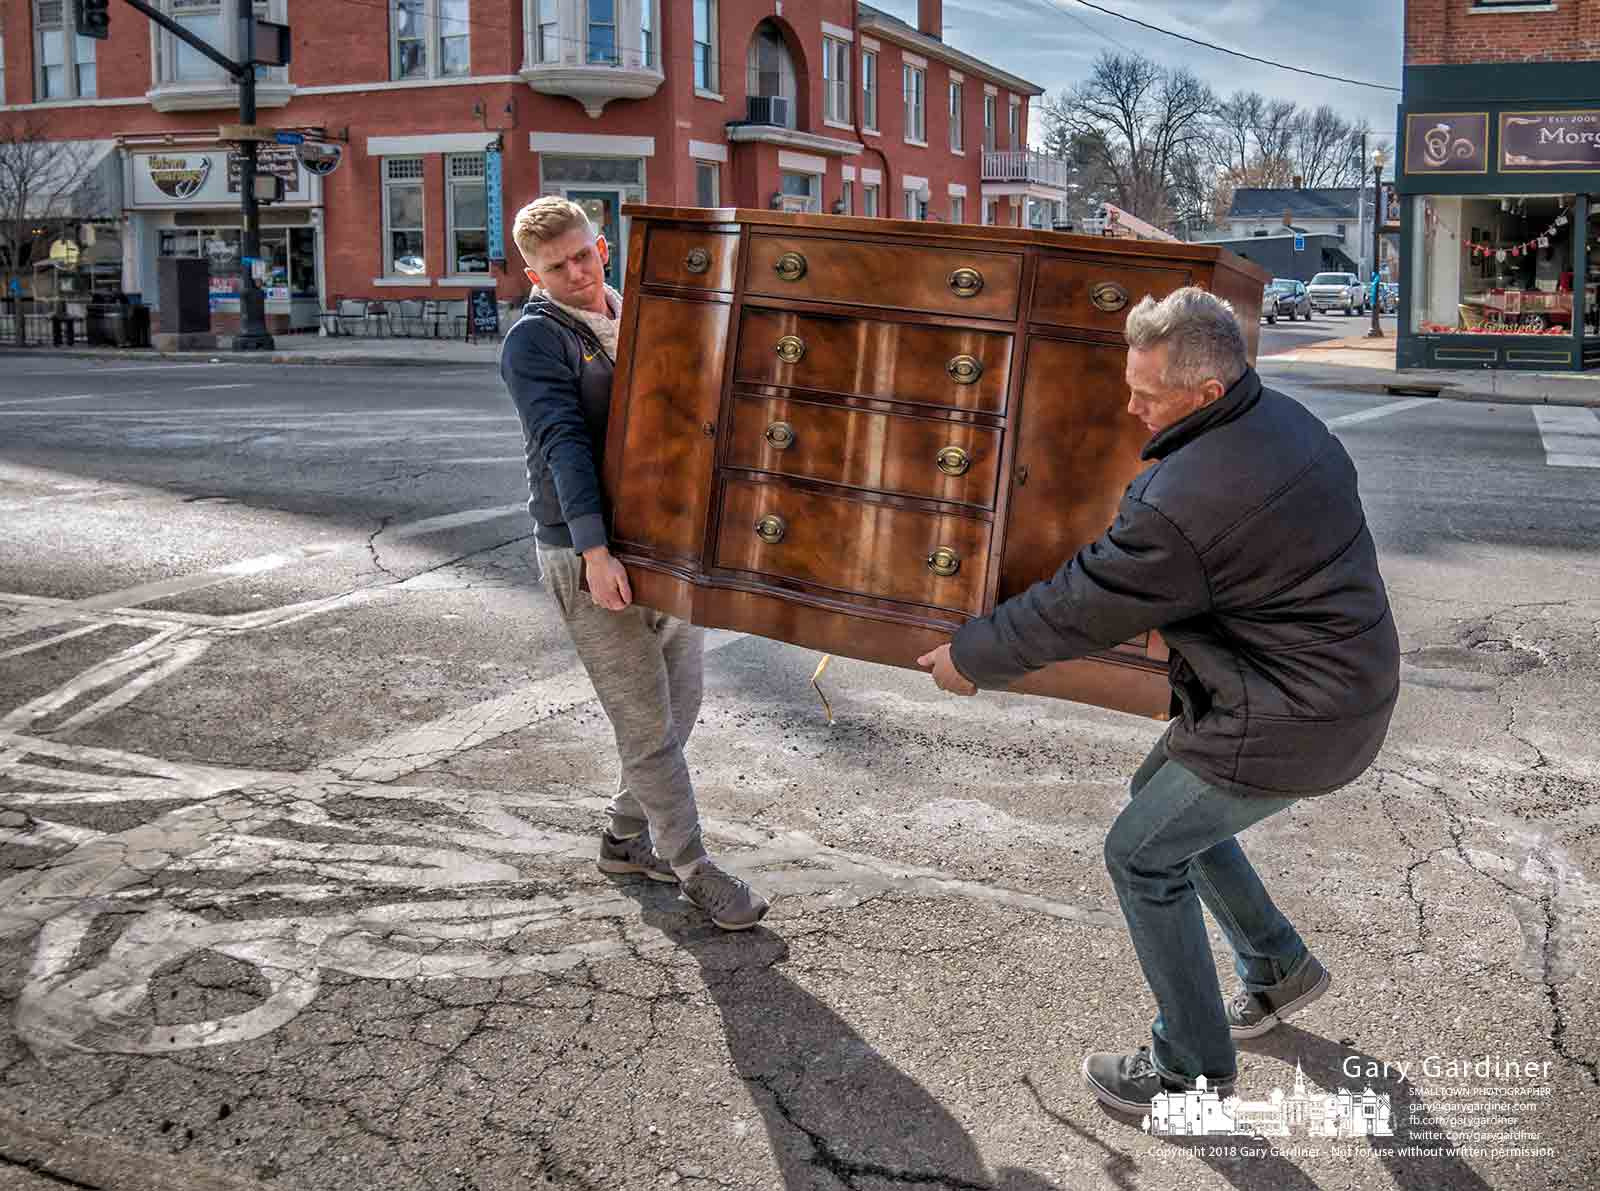 Pickers carry a newly acquired dresser into Edwin Loy Home in Uptown Westerville where it will be refurbished for resale. My Final Photo for Jan. 31, 2018.